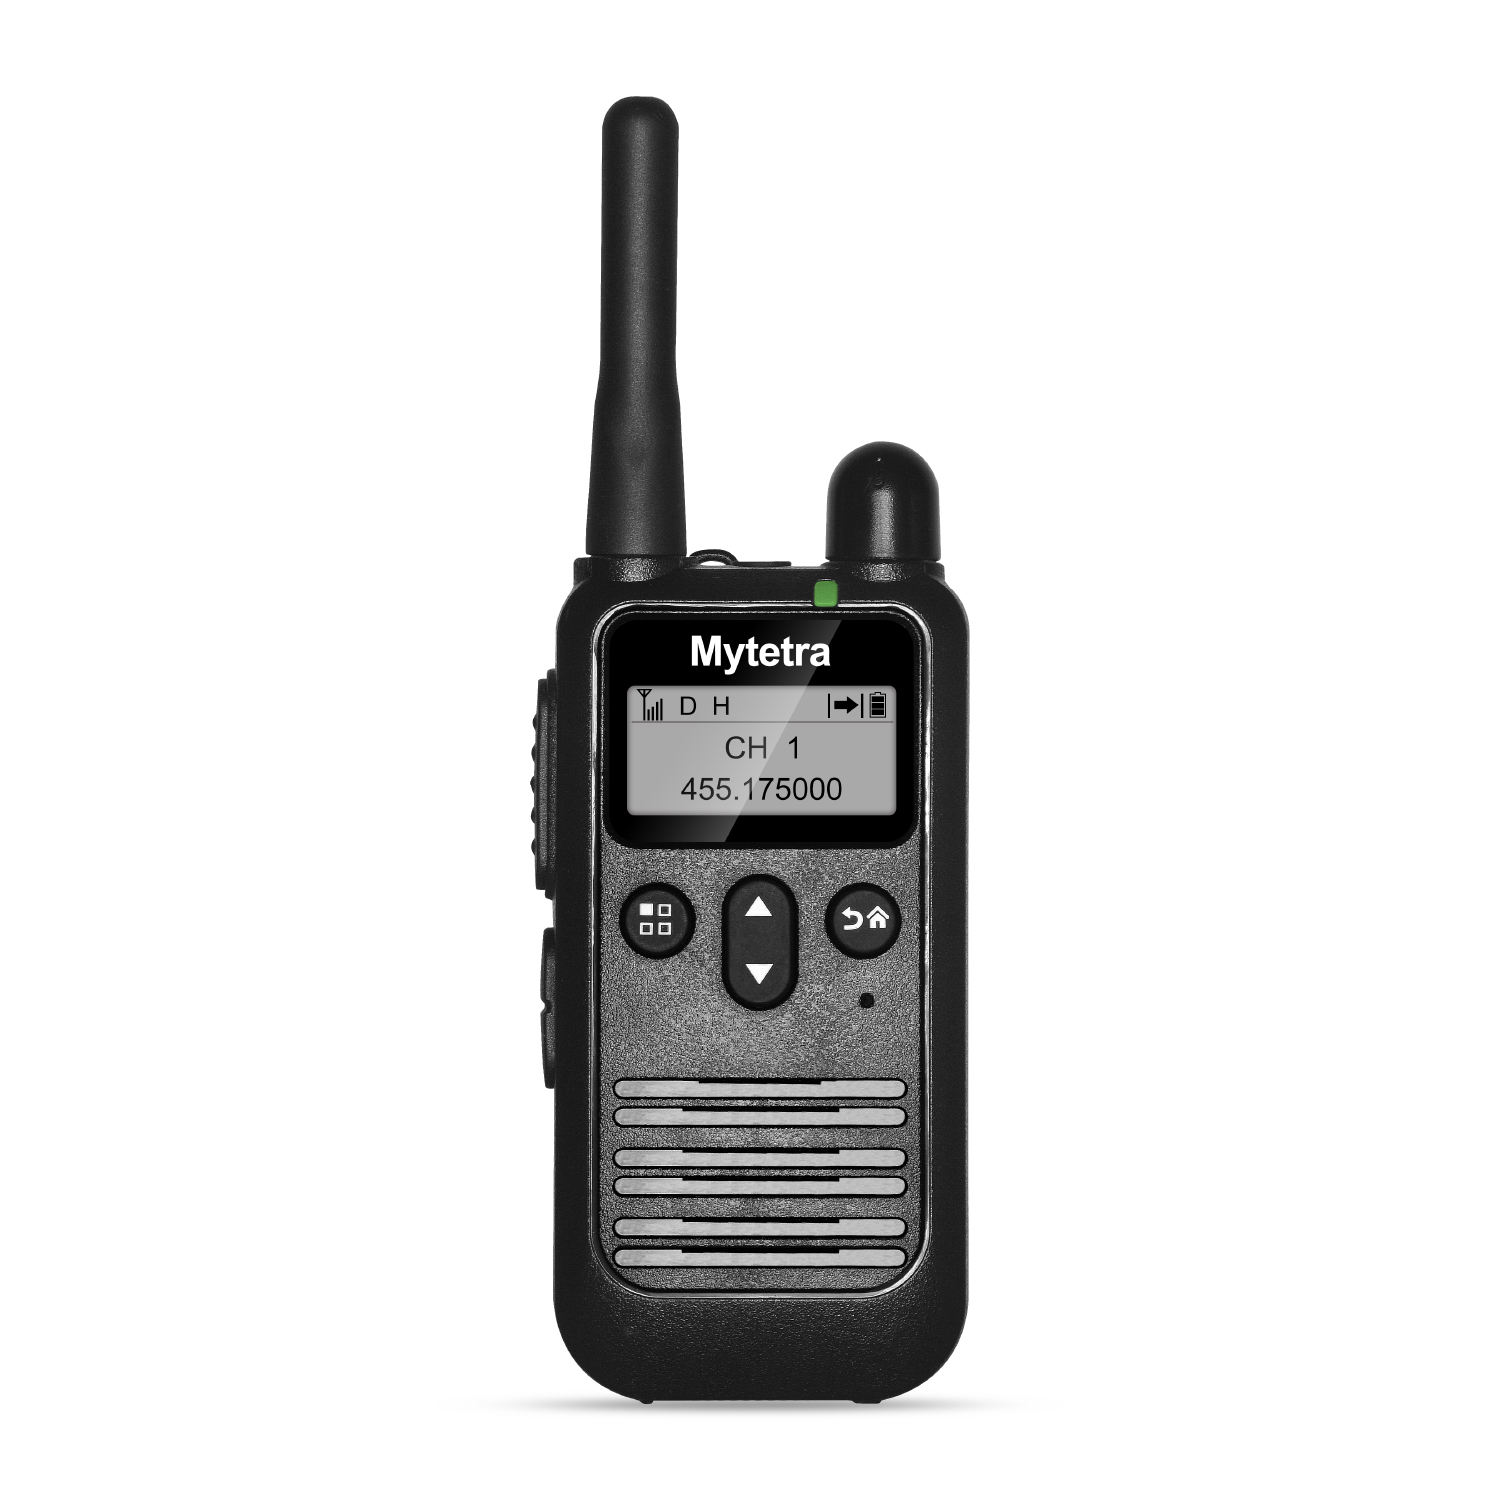 MYT-V18 Blu Piccolo Walkie Talkie Con Il PC Funzioni TOT Con Display LCD Programmabile Reale Walkie Talkie